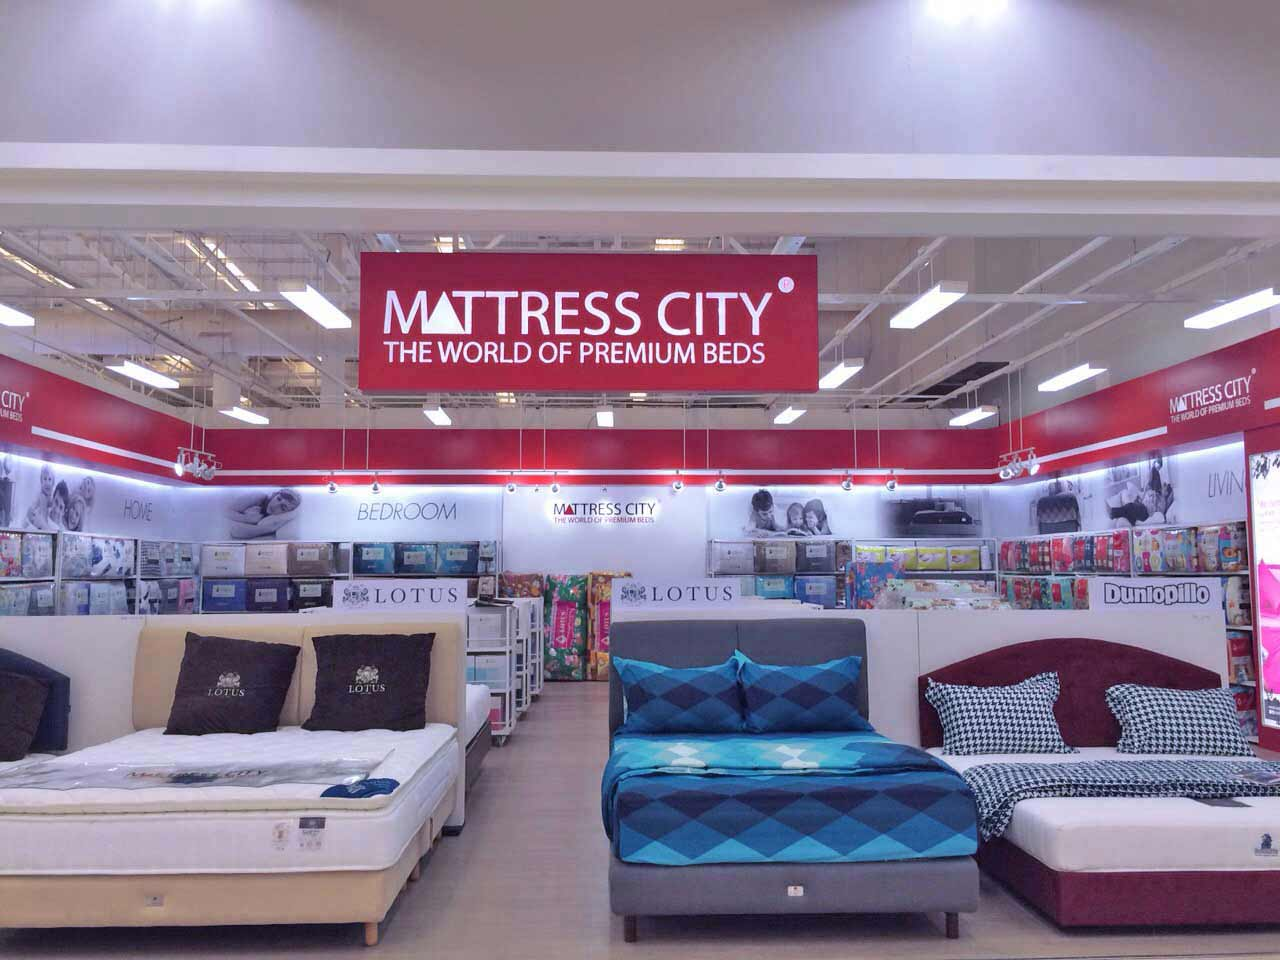 back who mattress specials is for excellent stomach a this anyone firm and or double sided special offers city an choice firmer prefers